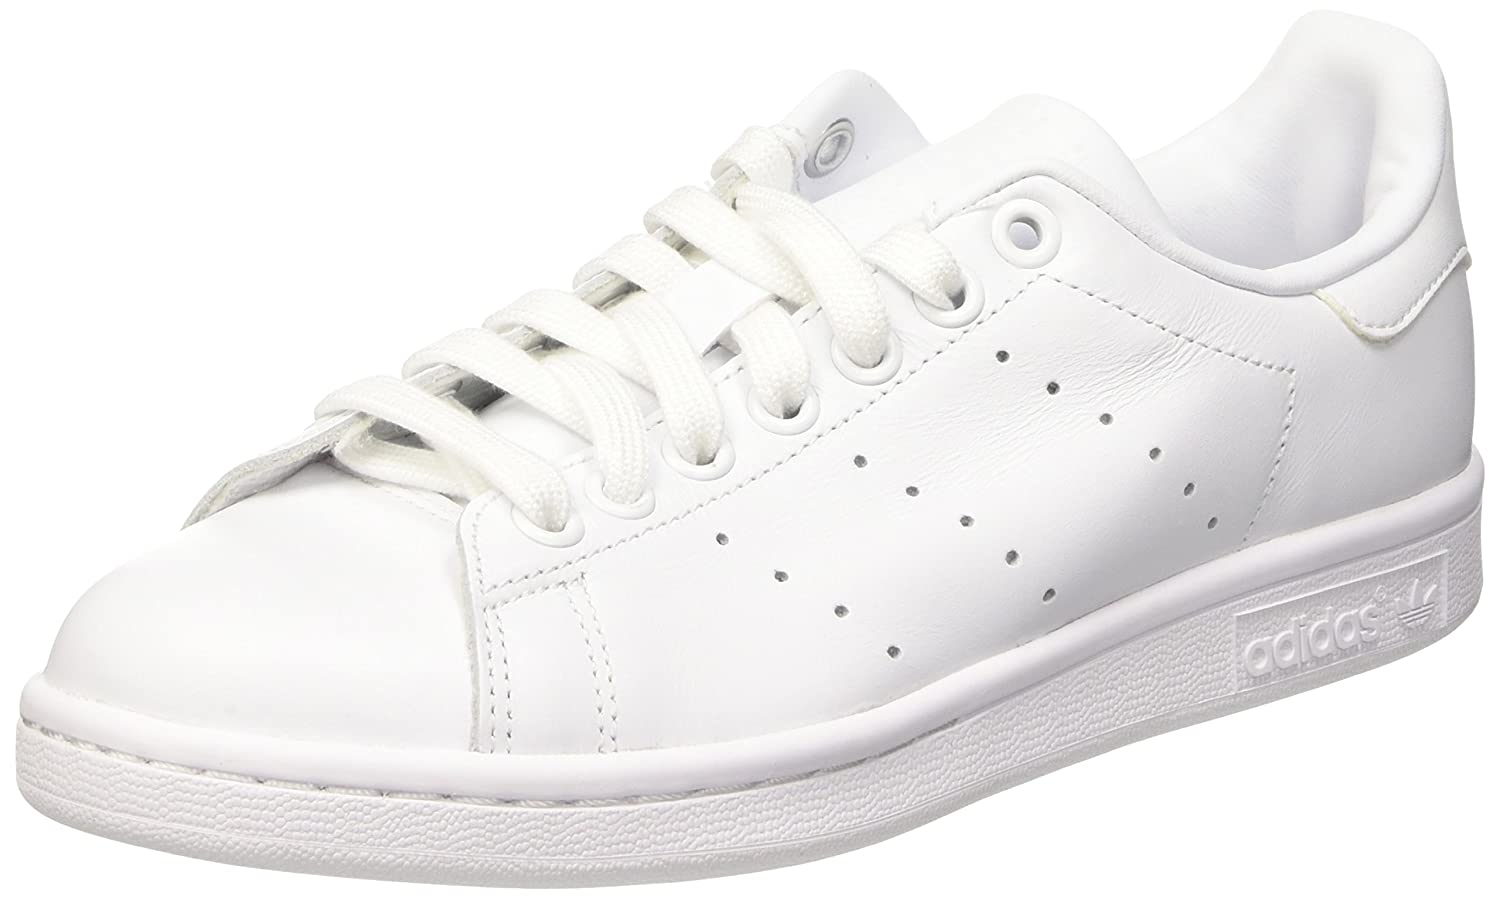 Adidas Stan Smith, Sandalias con Plataforma Unisex Adulto: adidas Originals: Amazon.es: Zapatos y complementos